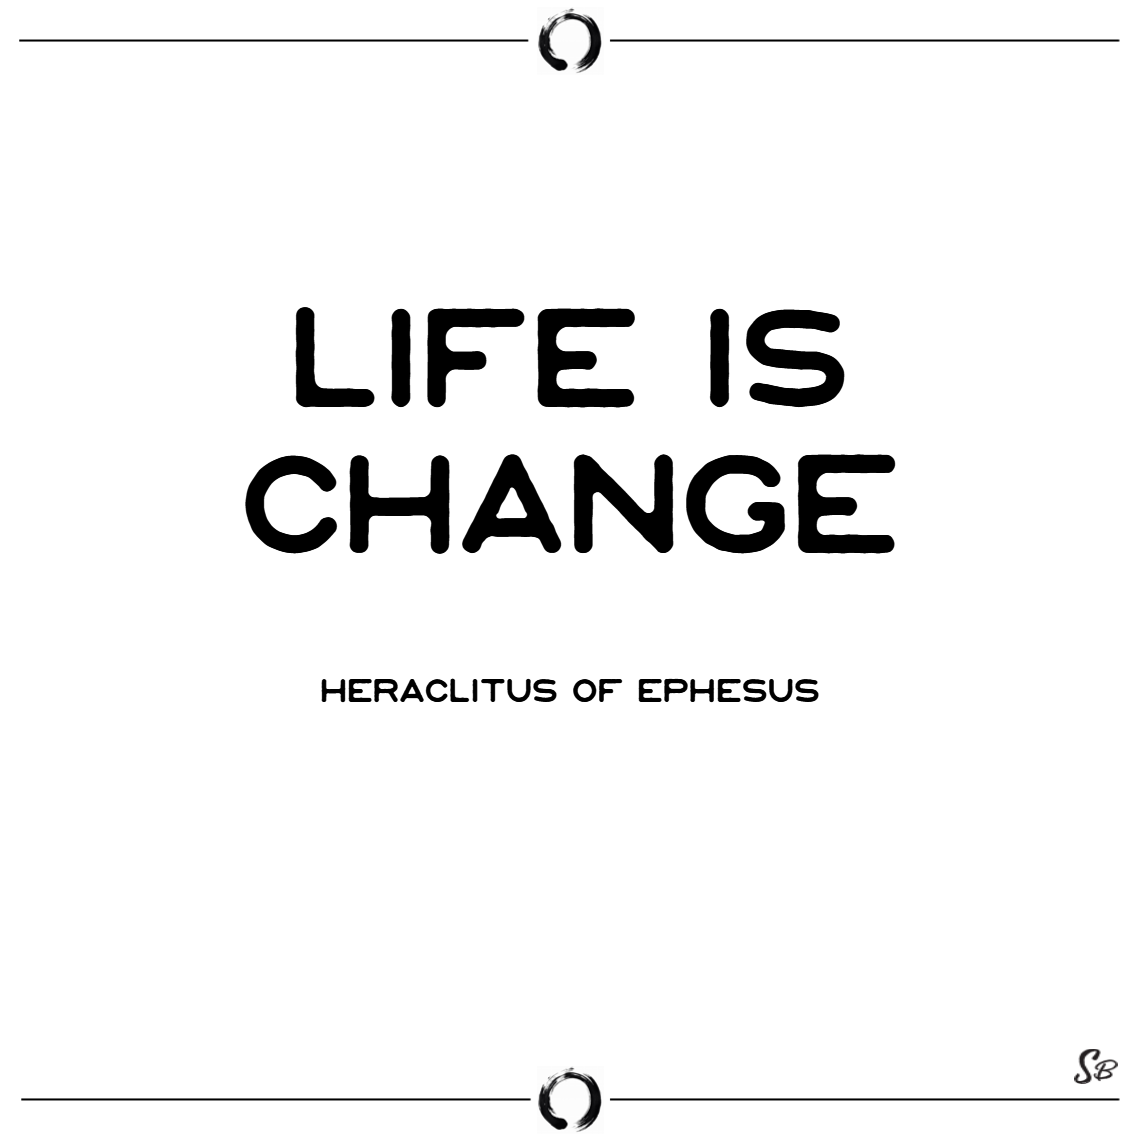 Quote About Changes In Life: 100+ Most Inspiring Change Quotes And Sayings